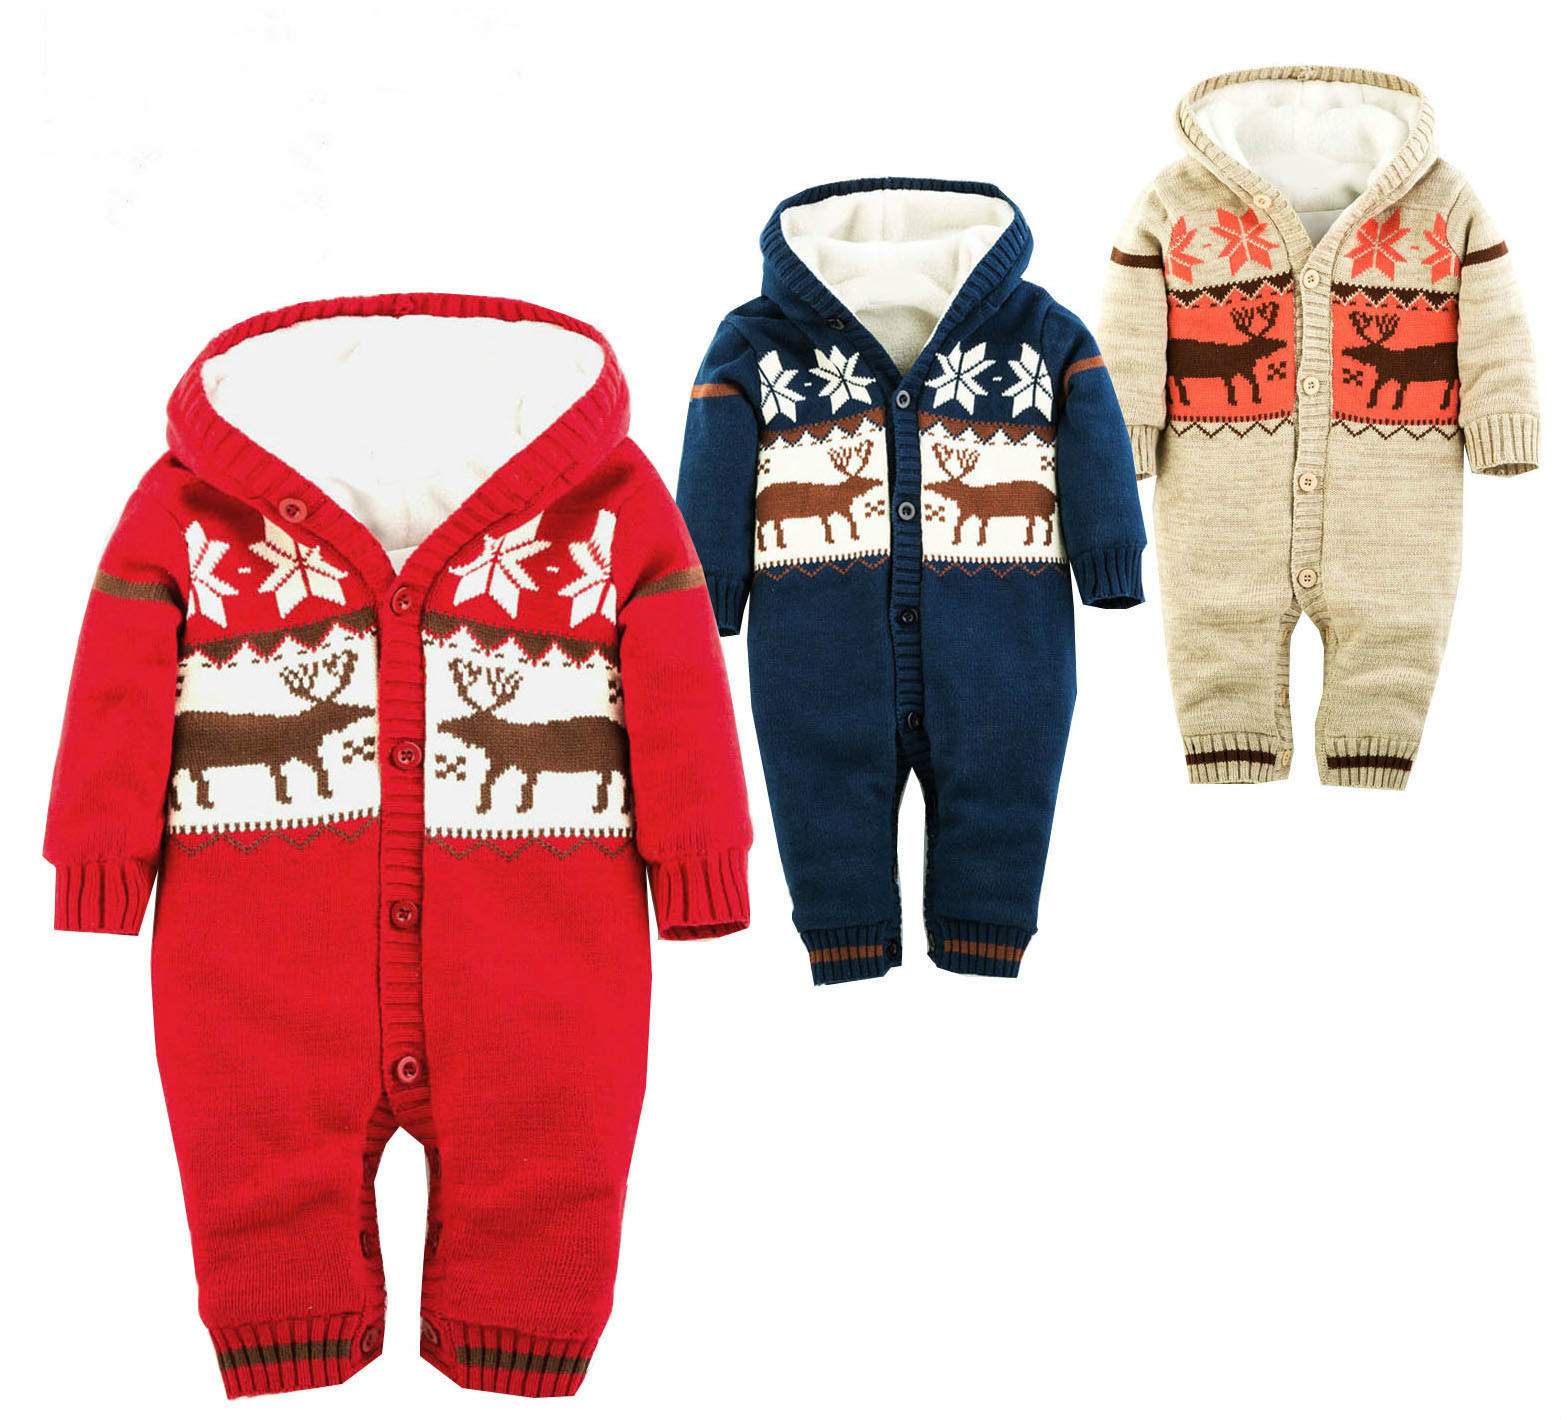 Hot Baby Warm Thick Winter Knitted Sweater Rompers Newborn Boys Girls Jumpsuit Climbing Clothes Christmas Deer Hooded Outwear iyeal winter baby rompers thick baby clothes newborn boys girls warm romper knitted sweater christmas deer hooded outwear